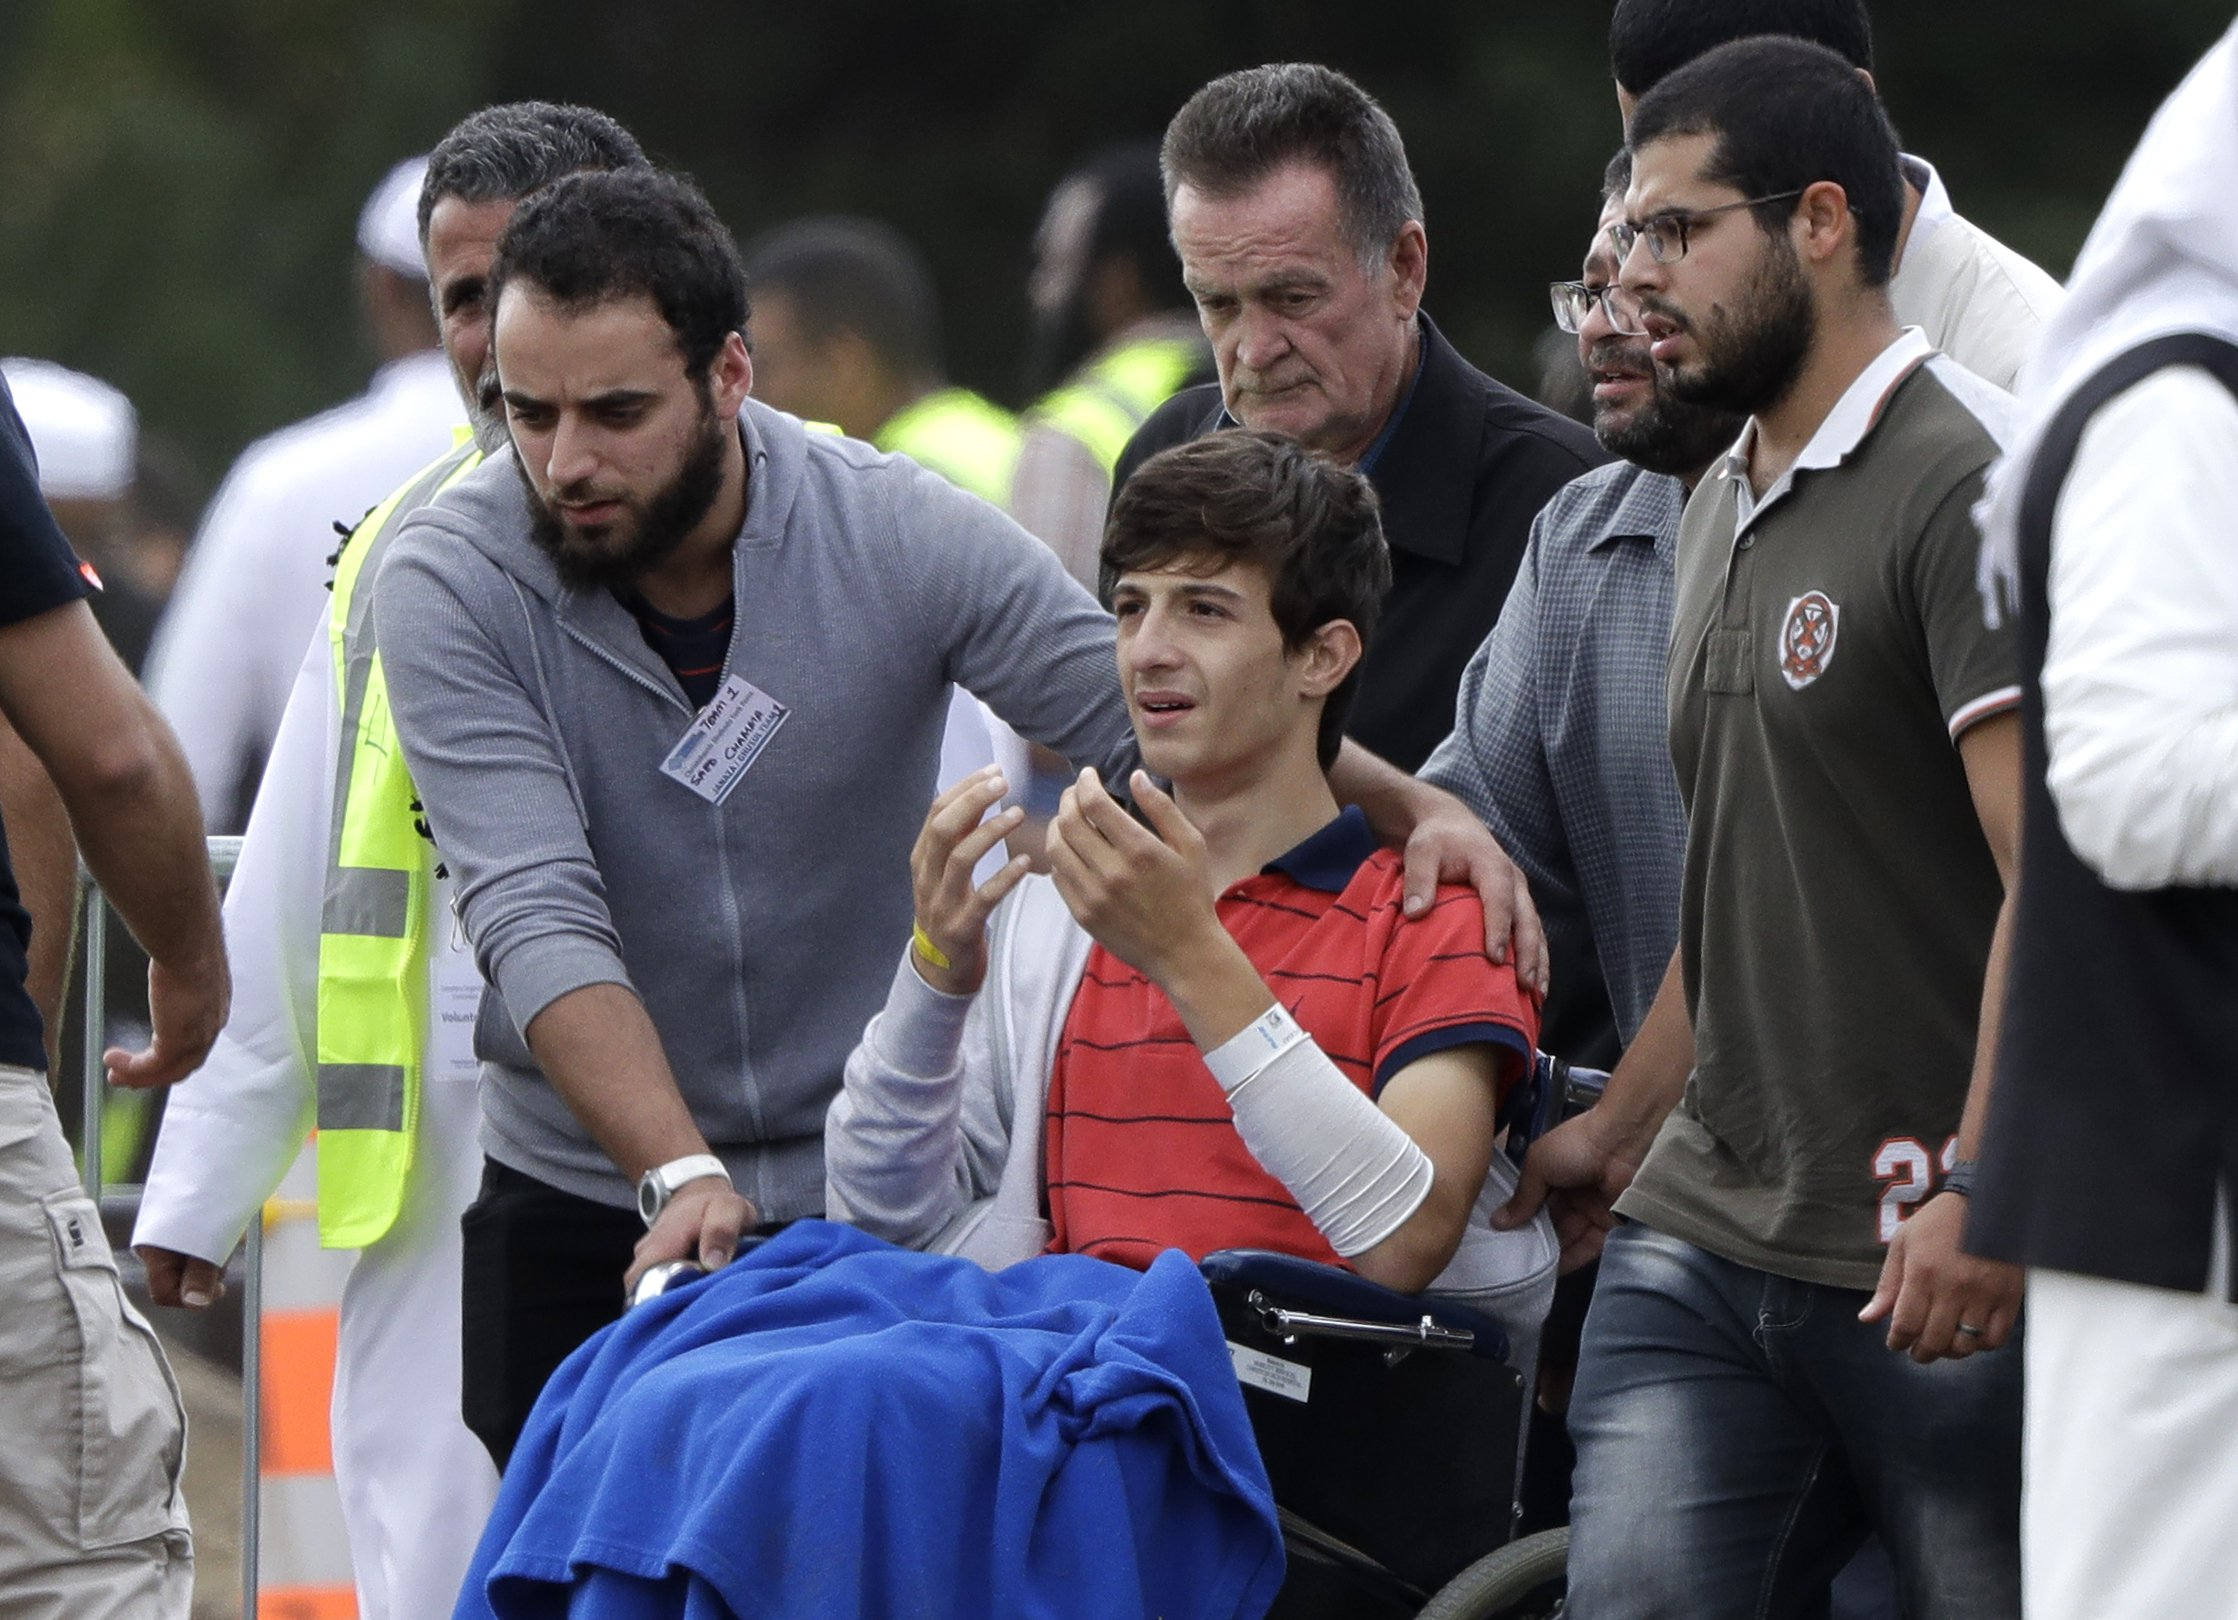 Zaed Mustafa, in wheelchair, brother of Hamza and son of Khalid Mustafa killed in the Friday March 15 mosque shootings reacts during their burial at the Memorial Park Cemetery in Christchurch, New Zealand, Wednesday, March 20, 2019. (AP Photo/Mark Baker)